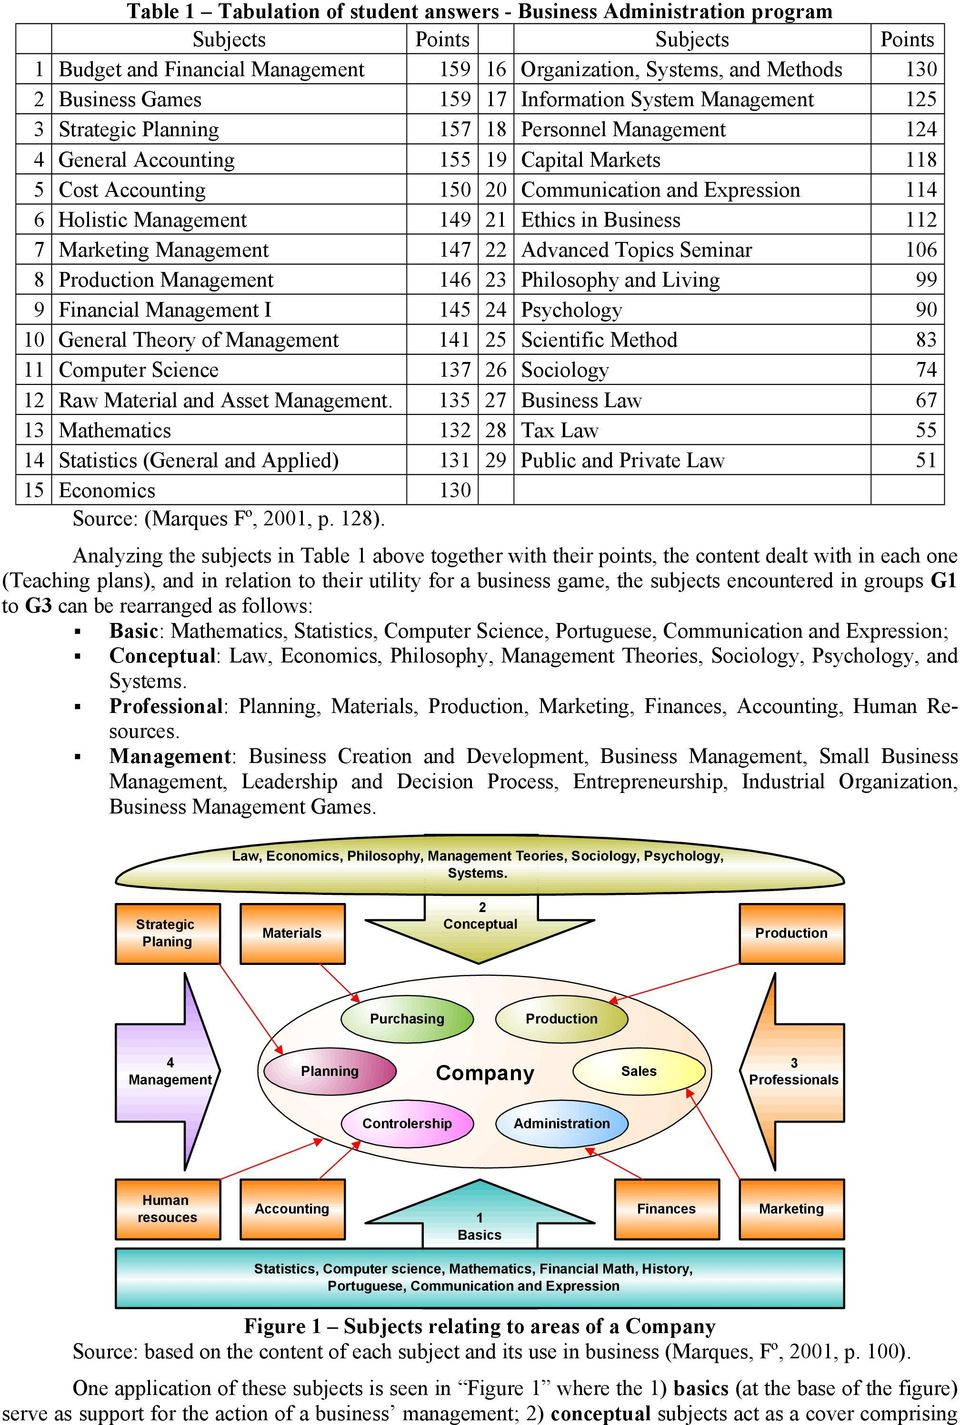 Expression 114 6 Holistic Management 149 21 Ethics in Business 112 7 Marketing Management 147 22 Advanced Topics Seminar 106 8 Production Management 146 23 Philosophy and Living 99 9 Financial